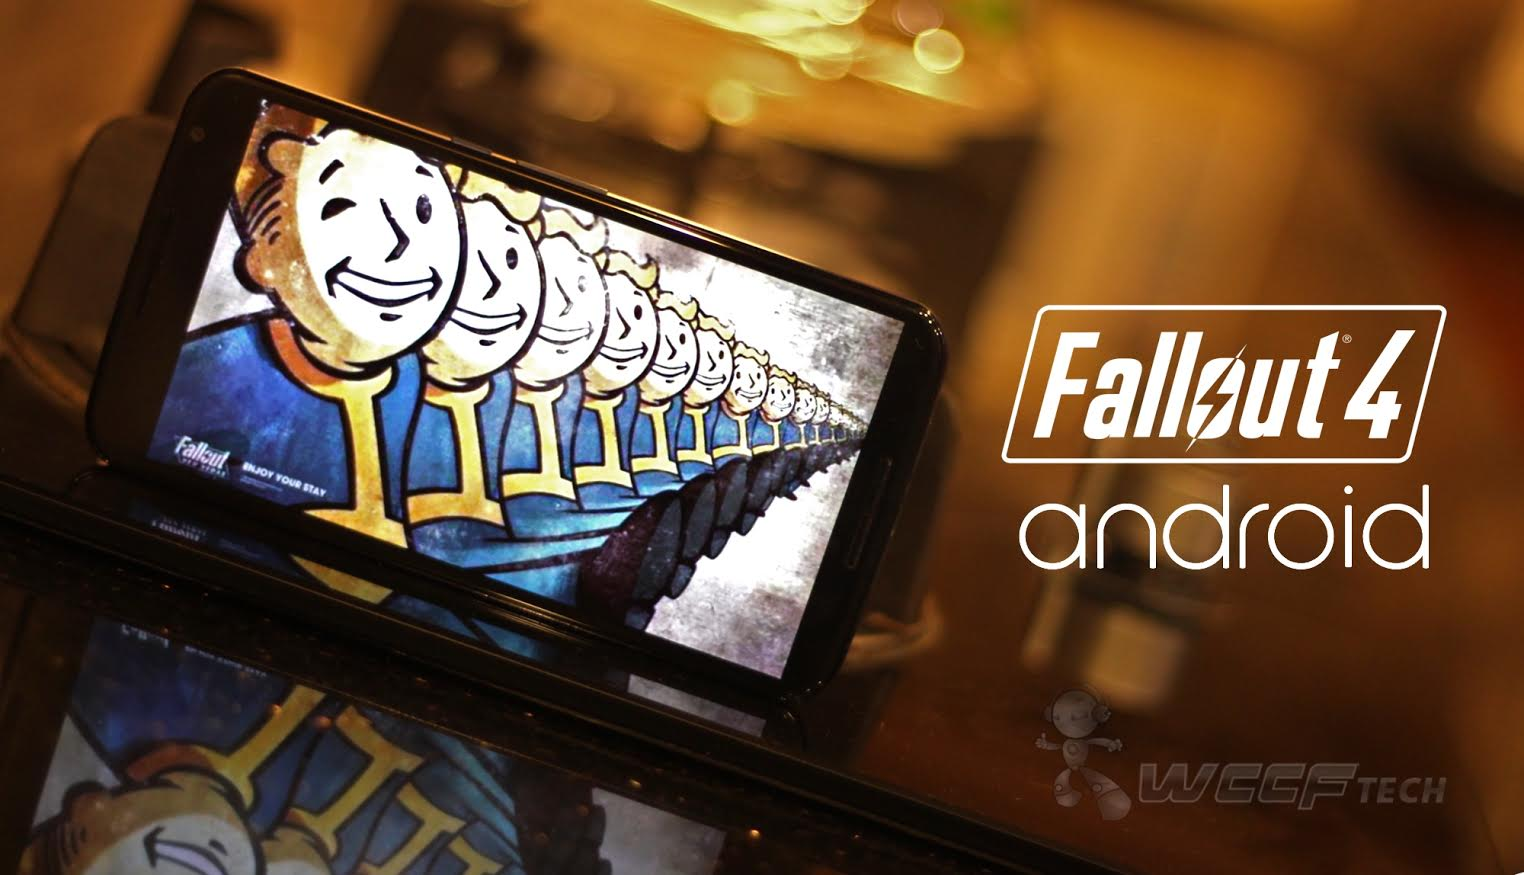 Fallout 4: How To Play It On Your Tablet? A Step By Step Guide